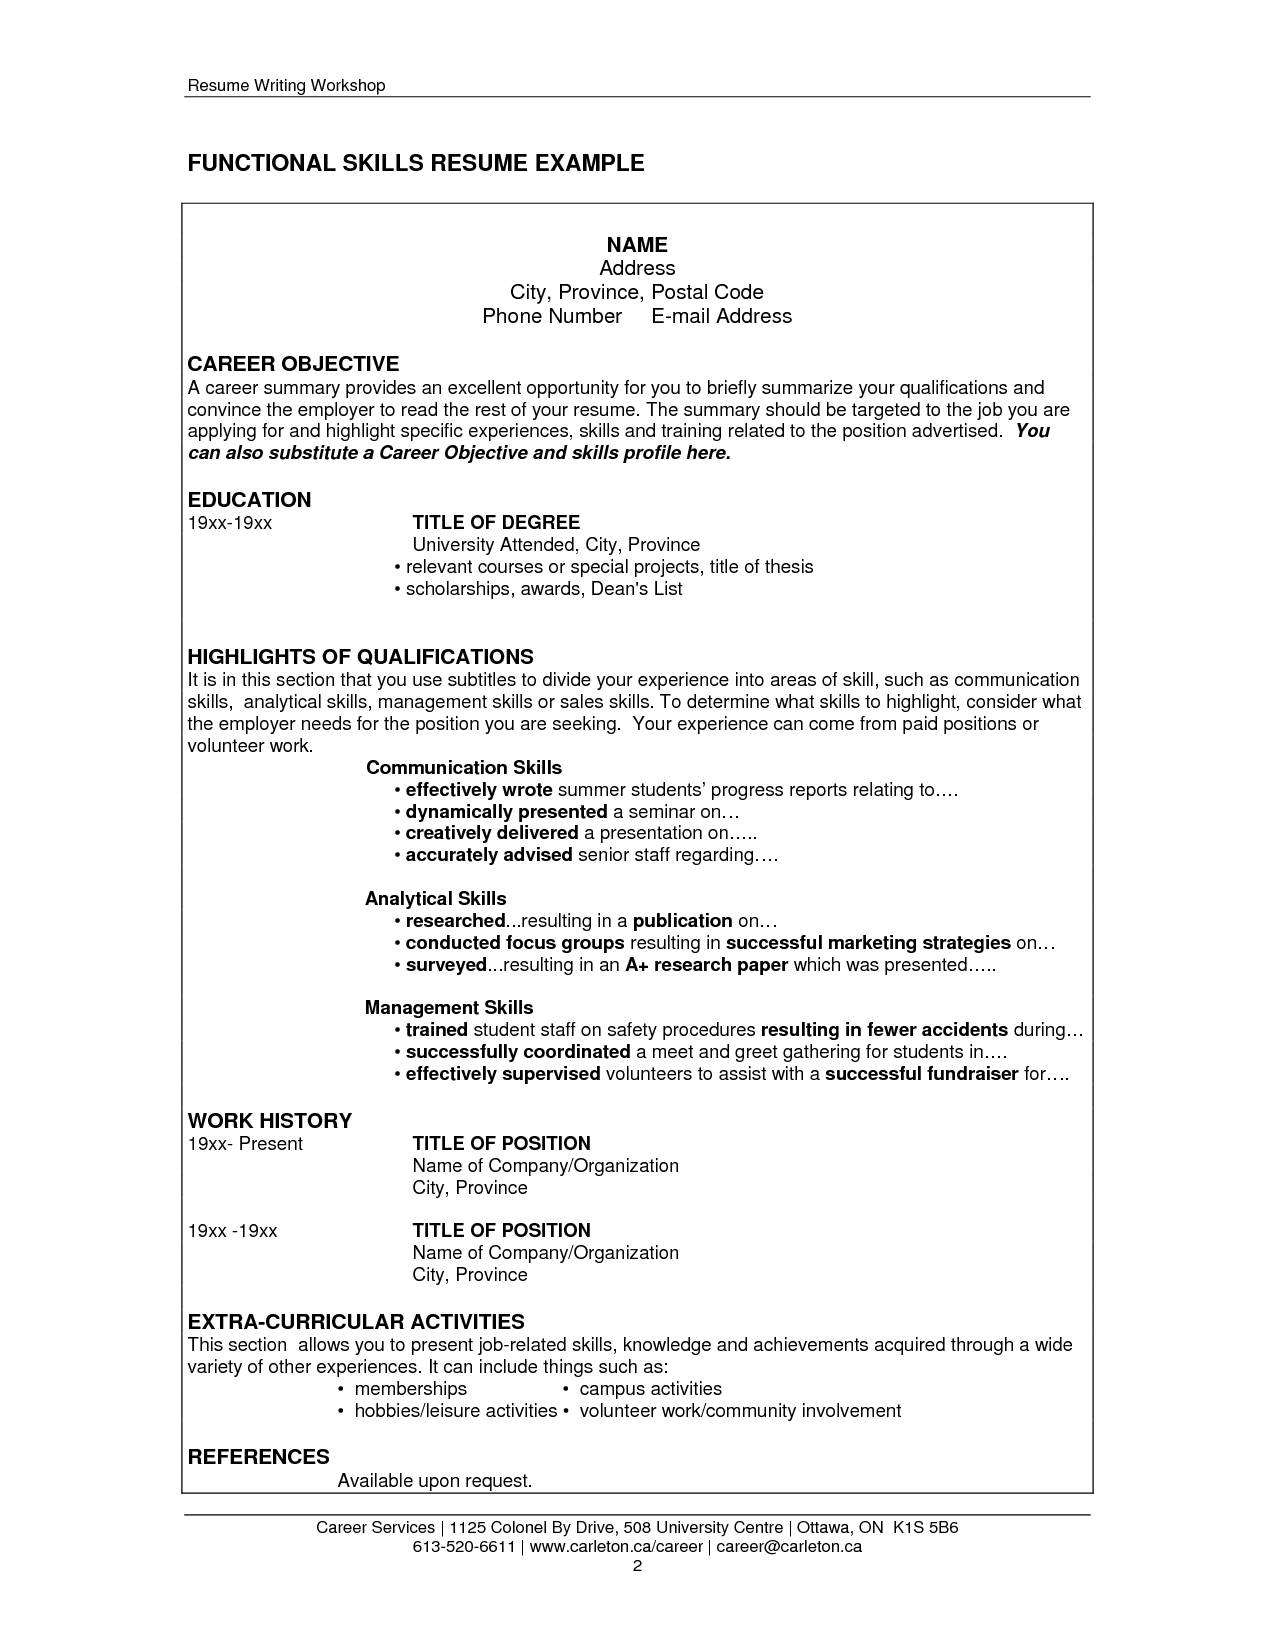 career profile for resumes